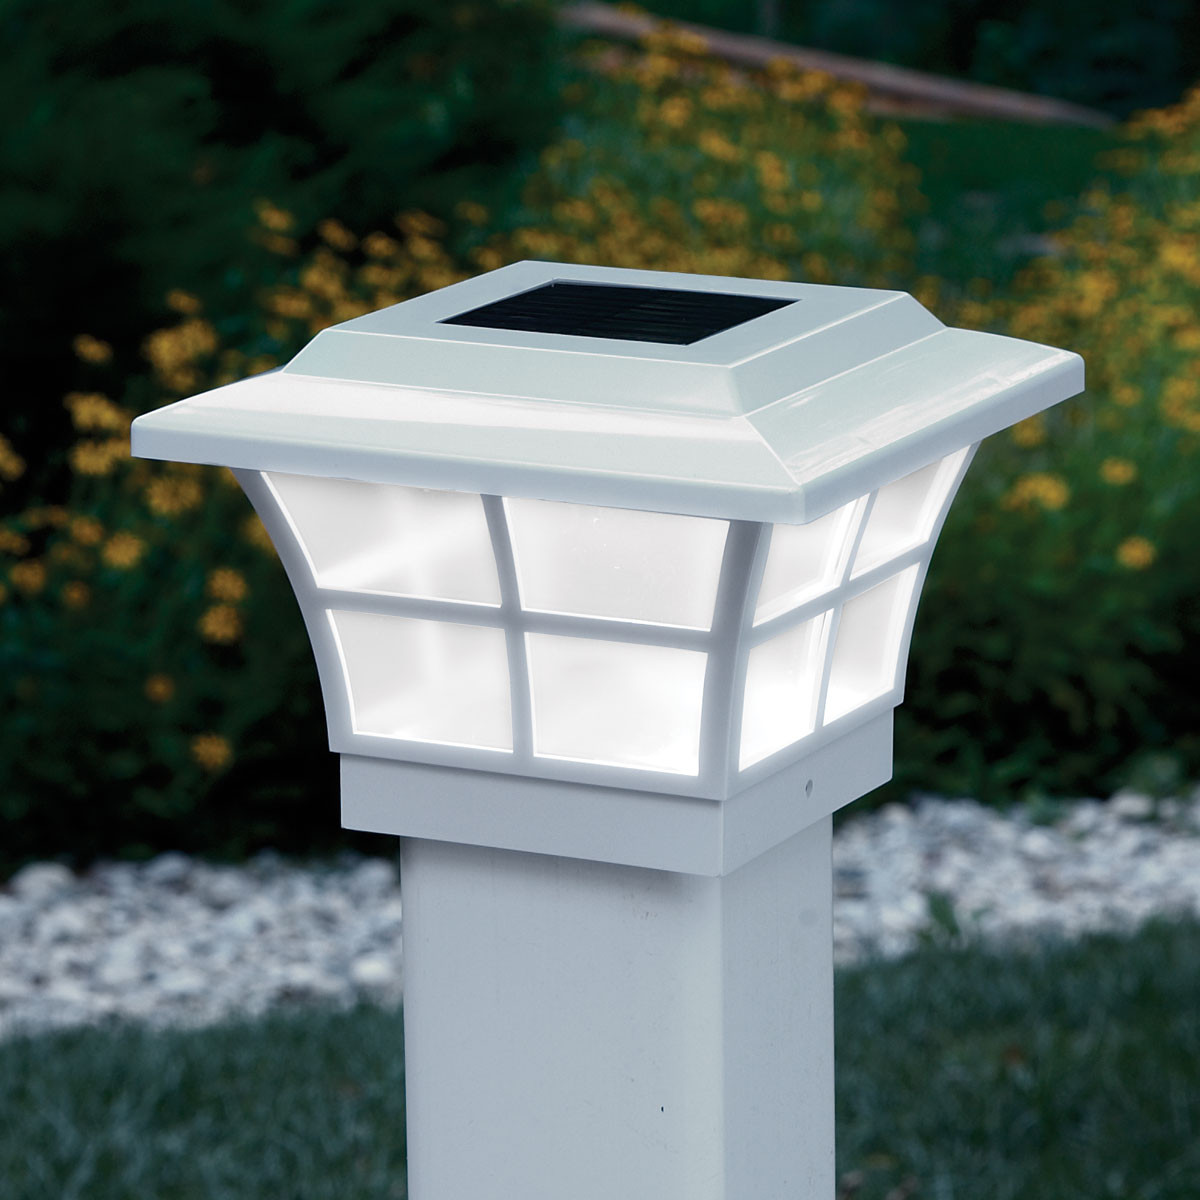 Best ideas about Fence Post Lights . Save or Pin Prestige Solar Lighted Post Caps White from Sporty s Now.